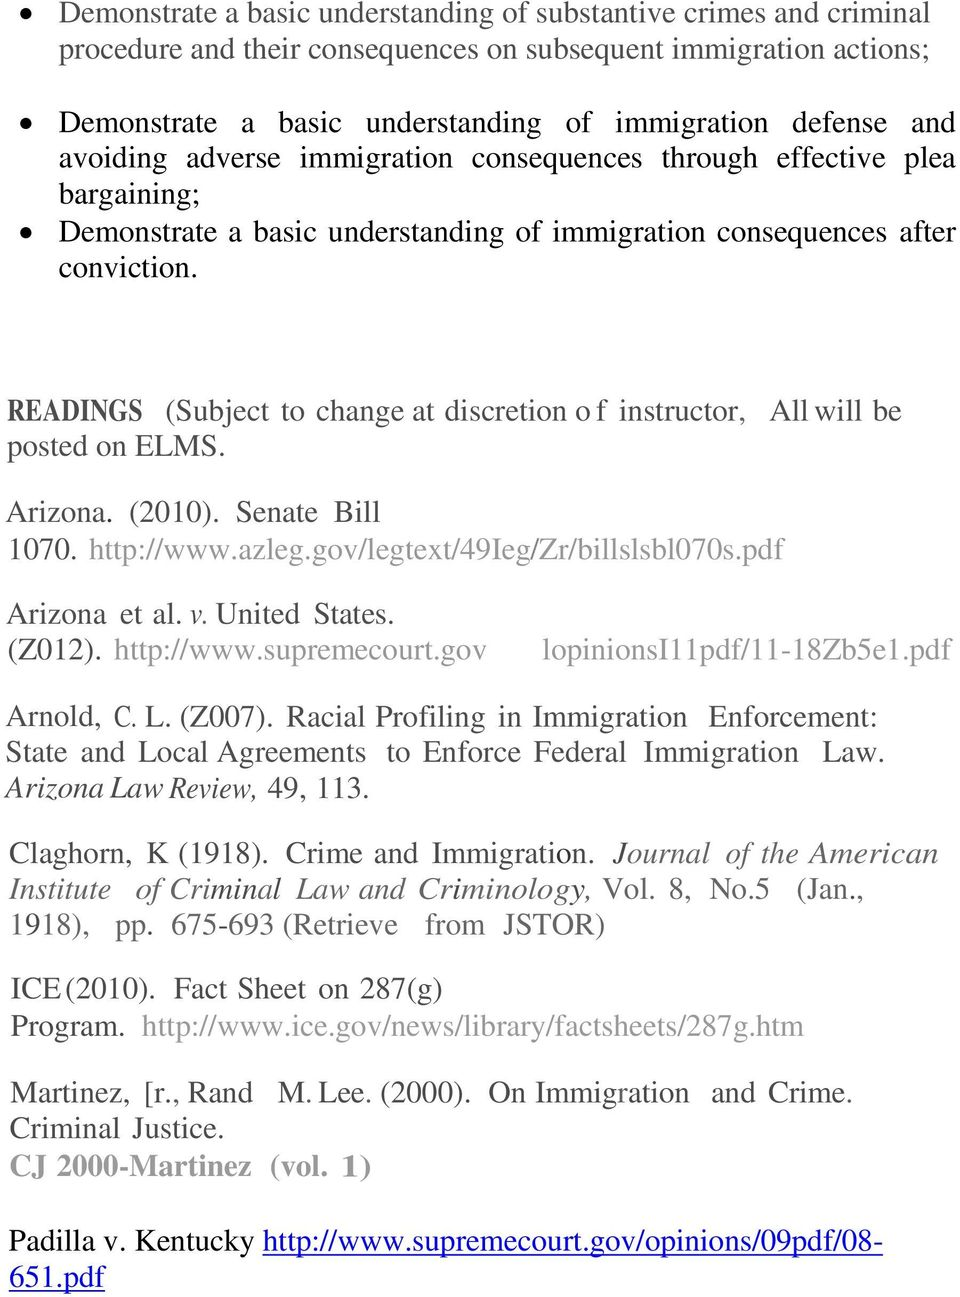 READINGS (Subject to change at discretion o f instructor, All will be posted on ELMS. Arizona. (2010). Senate Bill 1070. http://www.azleg.gov/legtext/49ieg/zr/billslsbl070s.pdf Arizona et al. v.